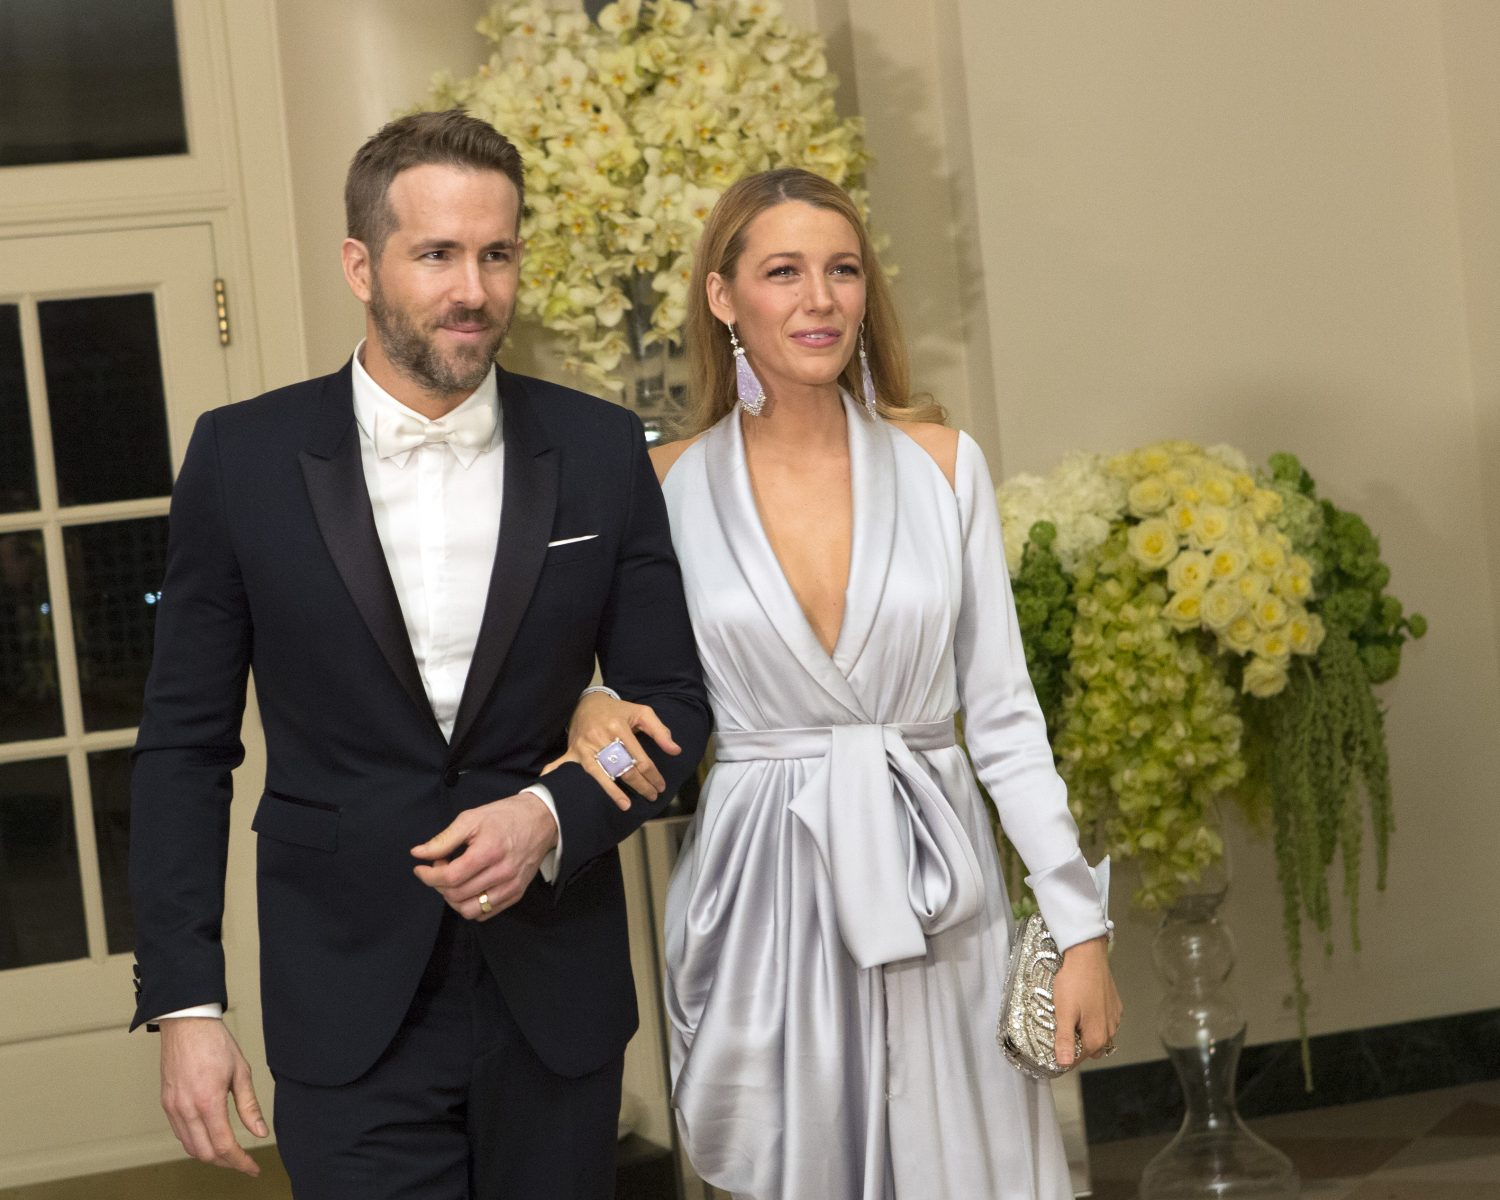 Ryan Reynolds And Blake Lively Wedding.Blake Lively And Ryan Reynolds Return To The Spot Where They